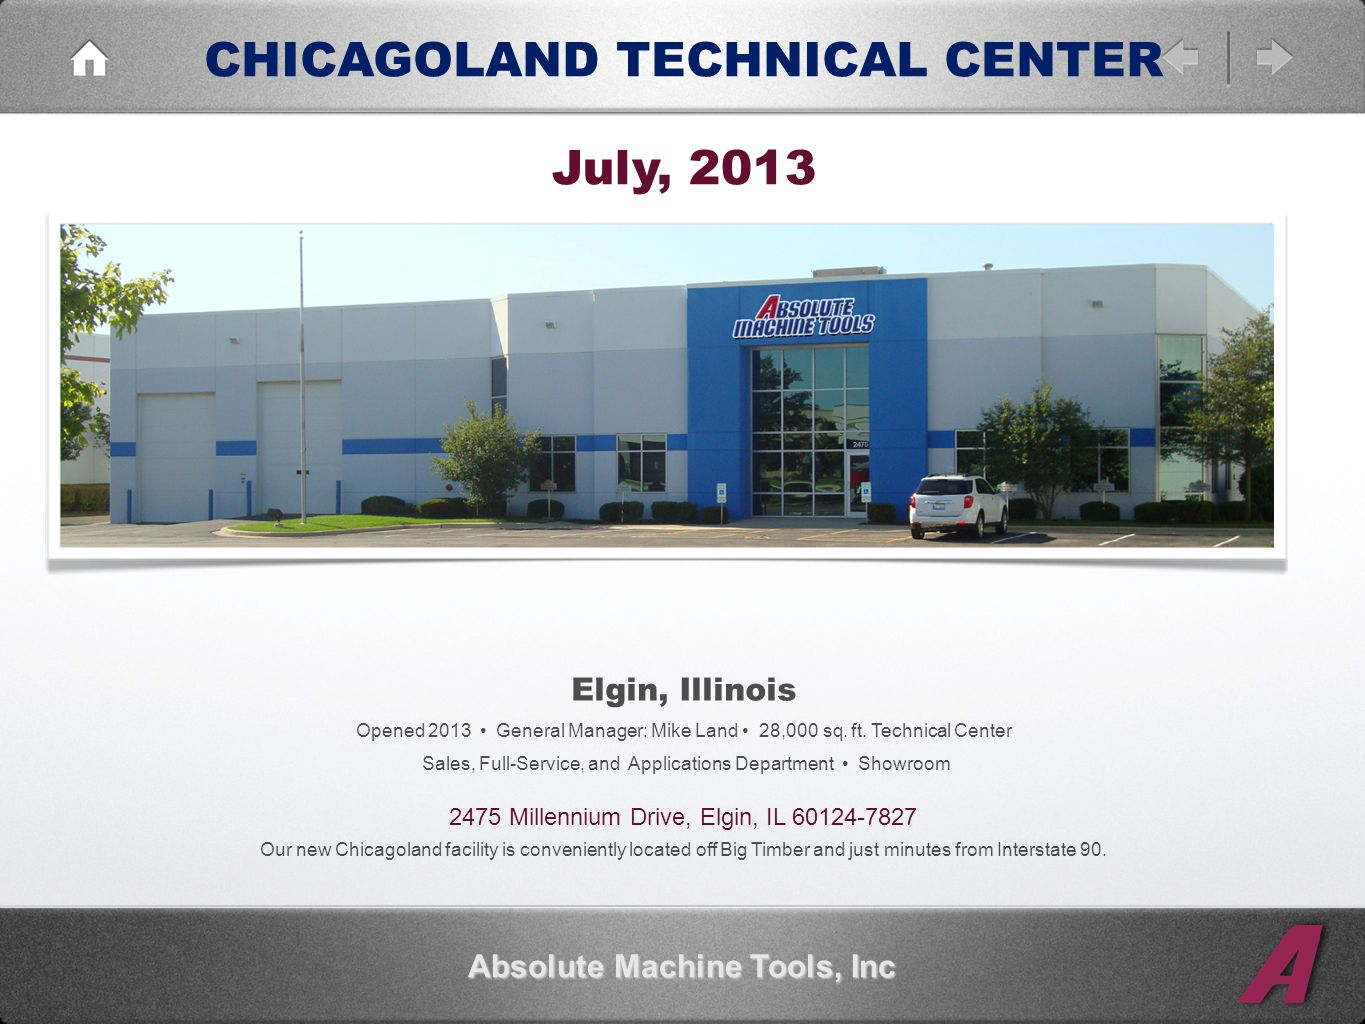 CHICAGOLAND TECHNICAL CENTER Absolute Machine Tools, Inc Elgin, Illinois Opened 2013 General Manager: Mike Land 28,000 sq.